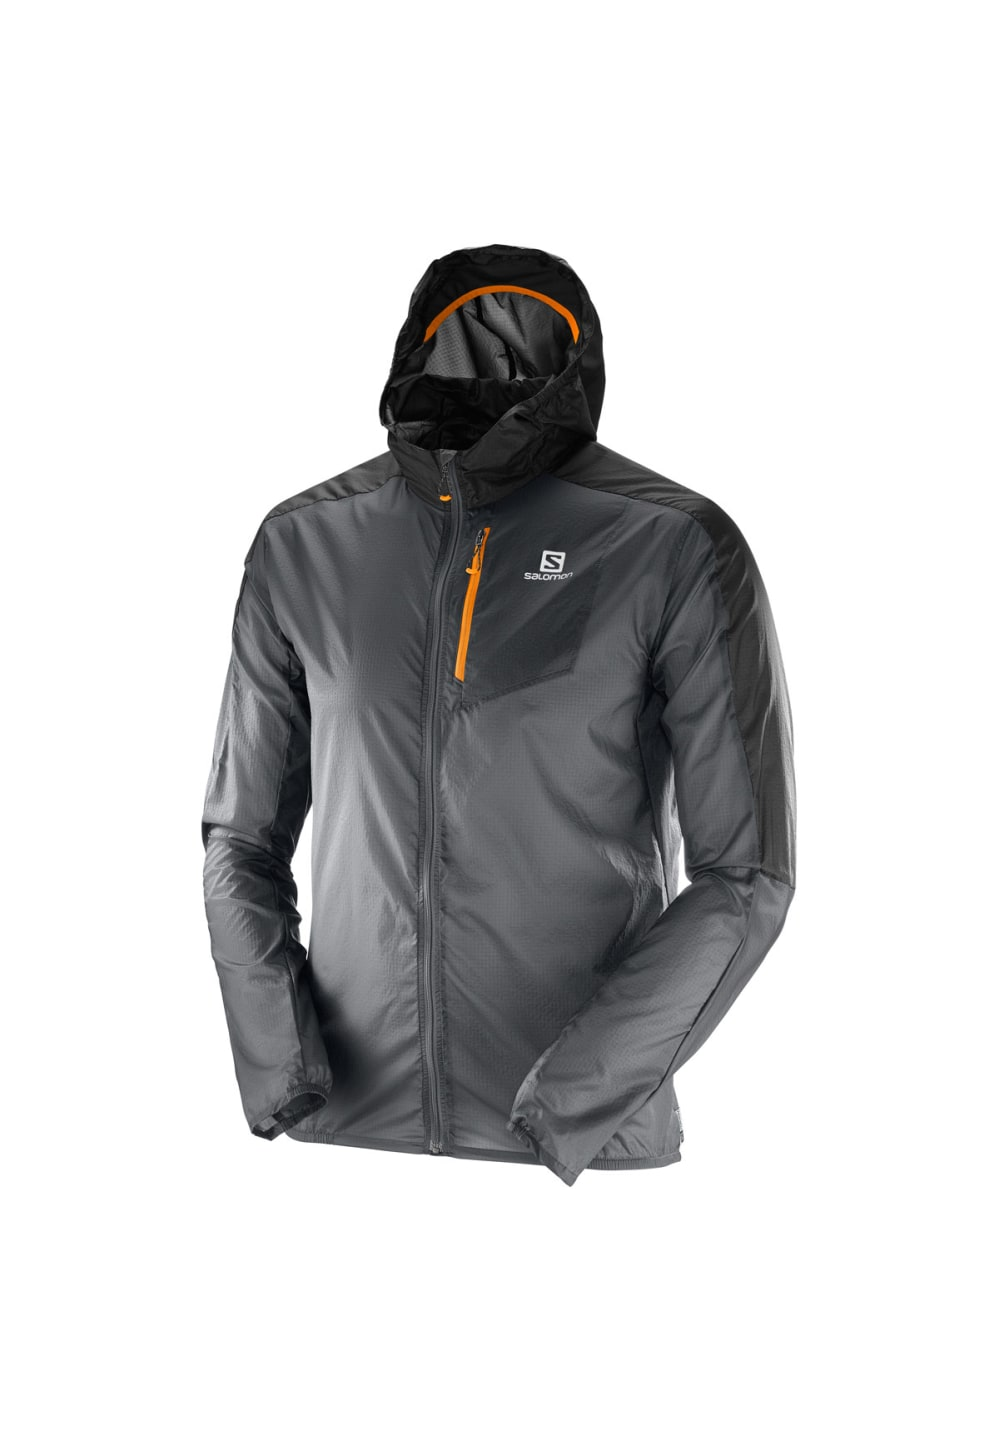 Nouvelles Arrivées c4eb4 901a4 Salomon Fast Wing Hoodie - Running jackets for Men - Grey